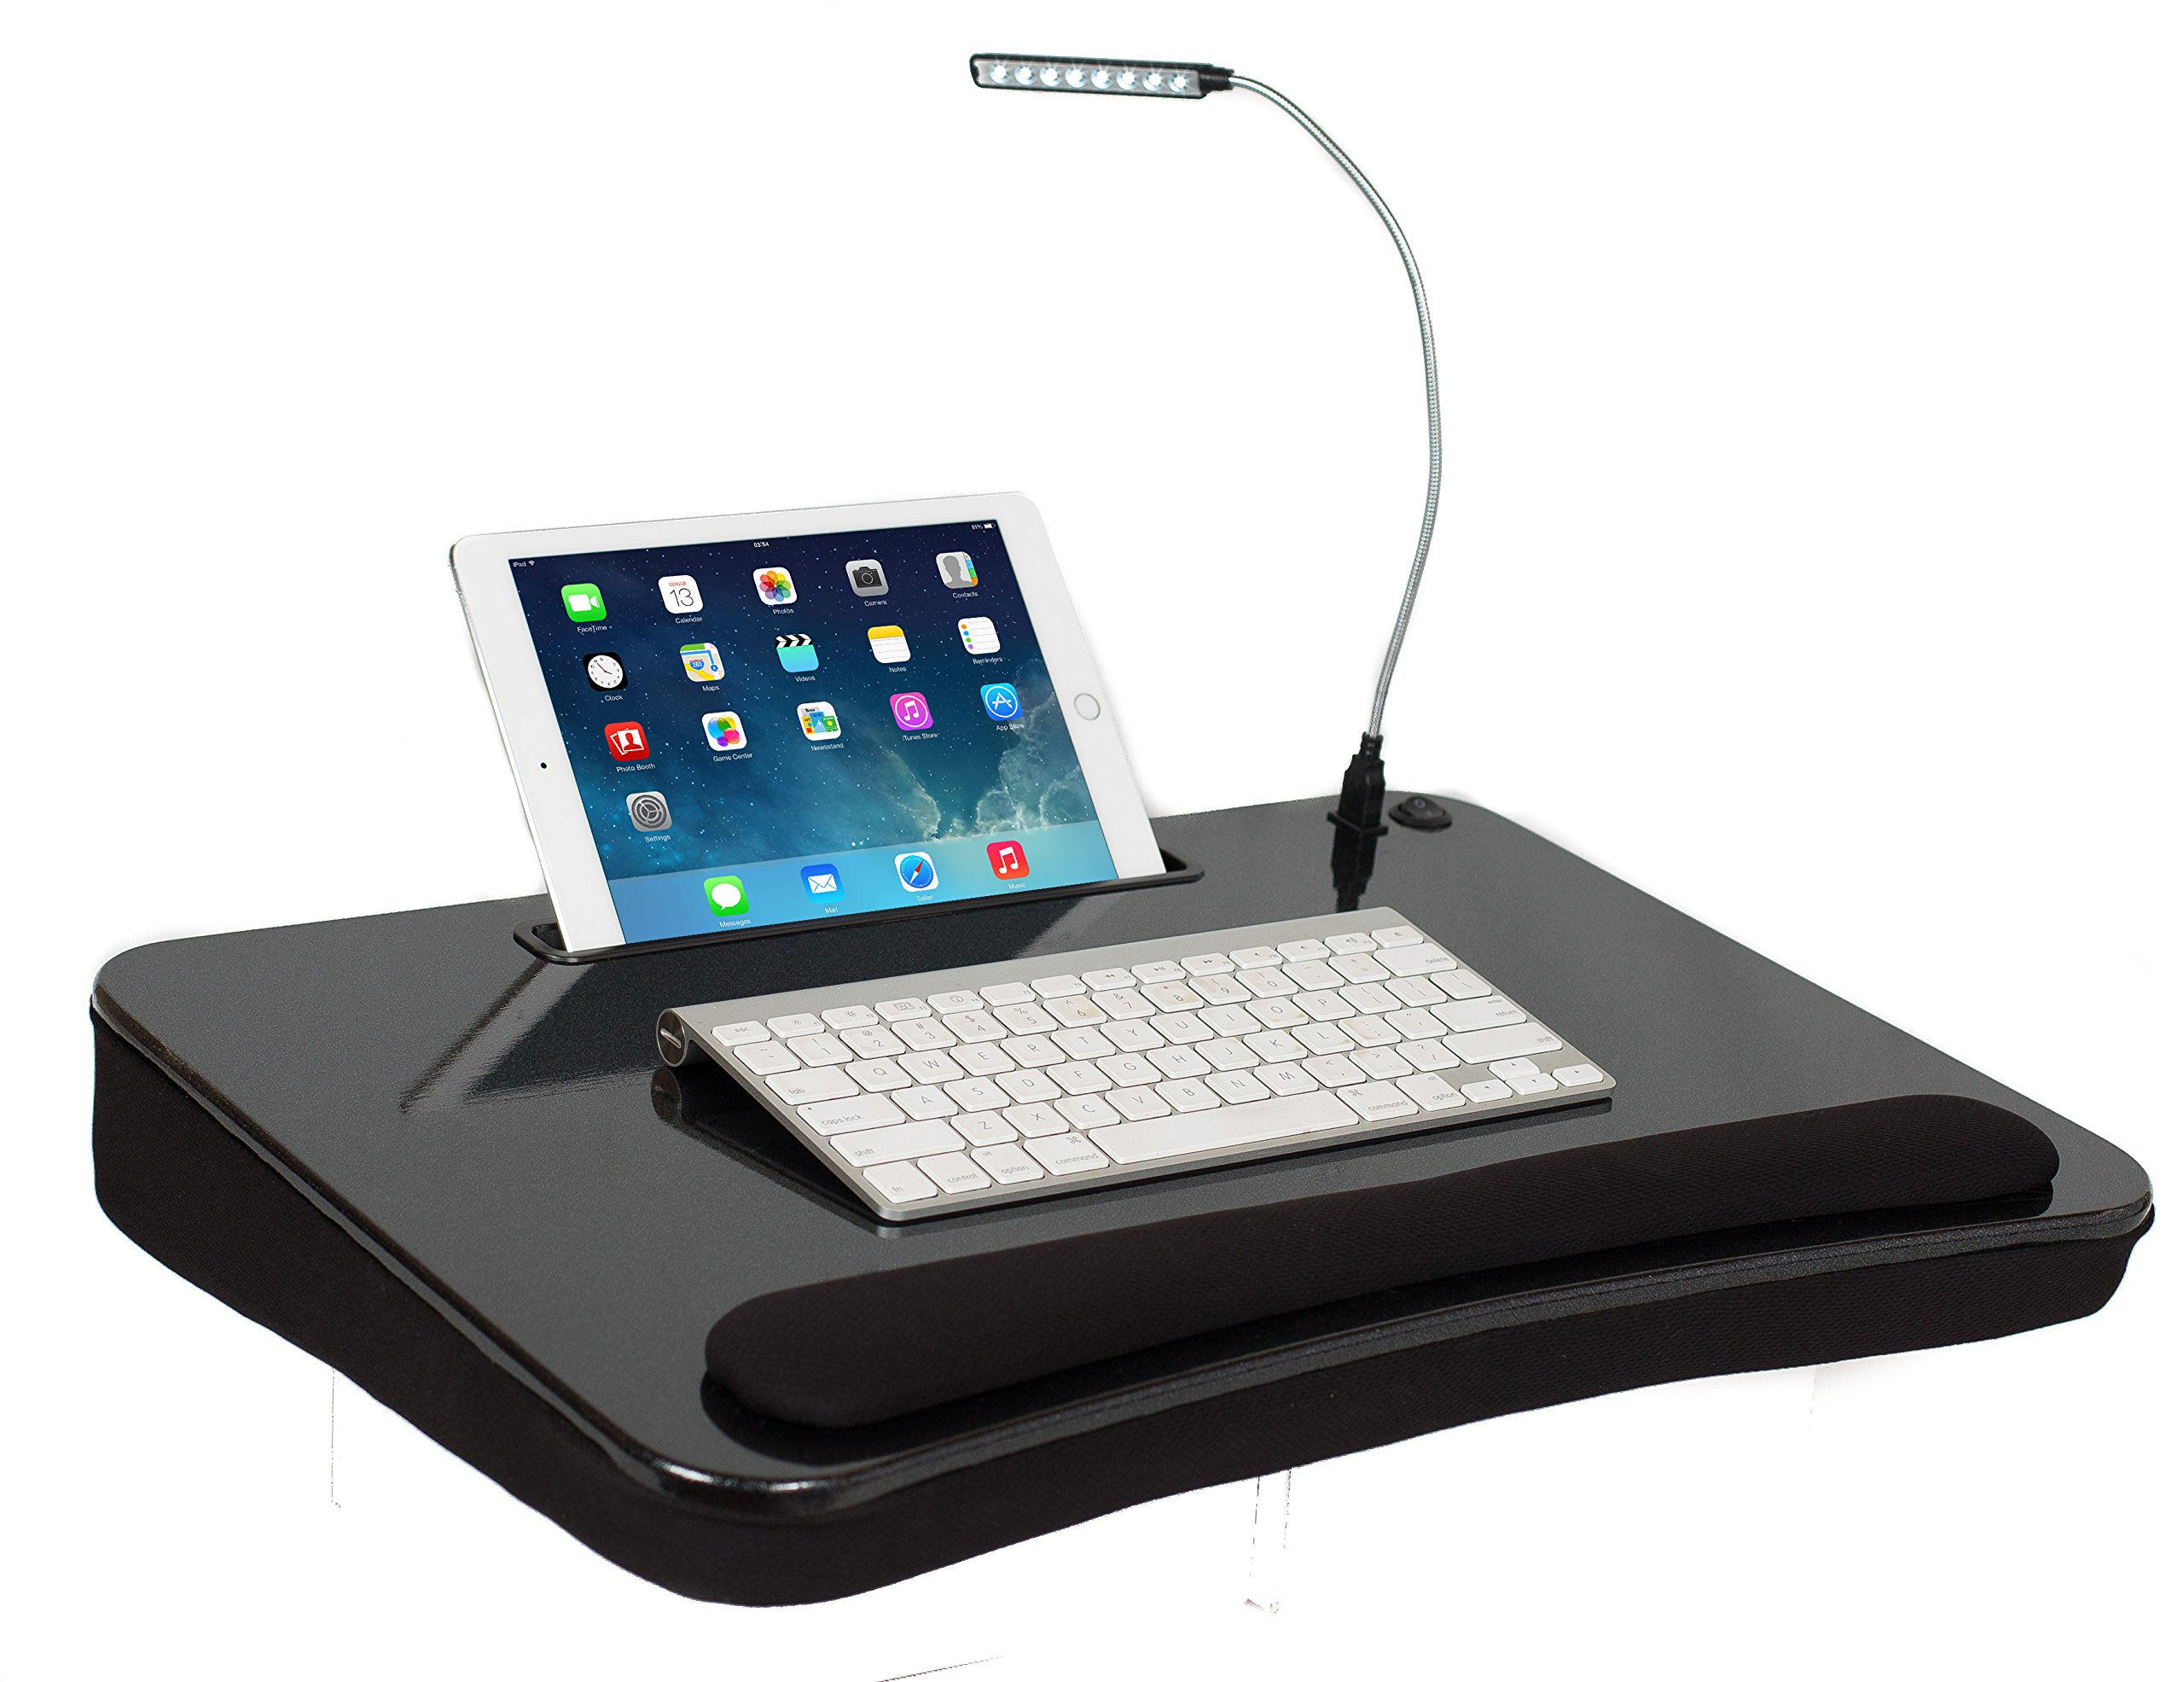 Sofia & Sam XLG Deluxe Lap Desk with Tablet Slot (With USB Light, Black) by Sofia + Sam